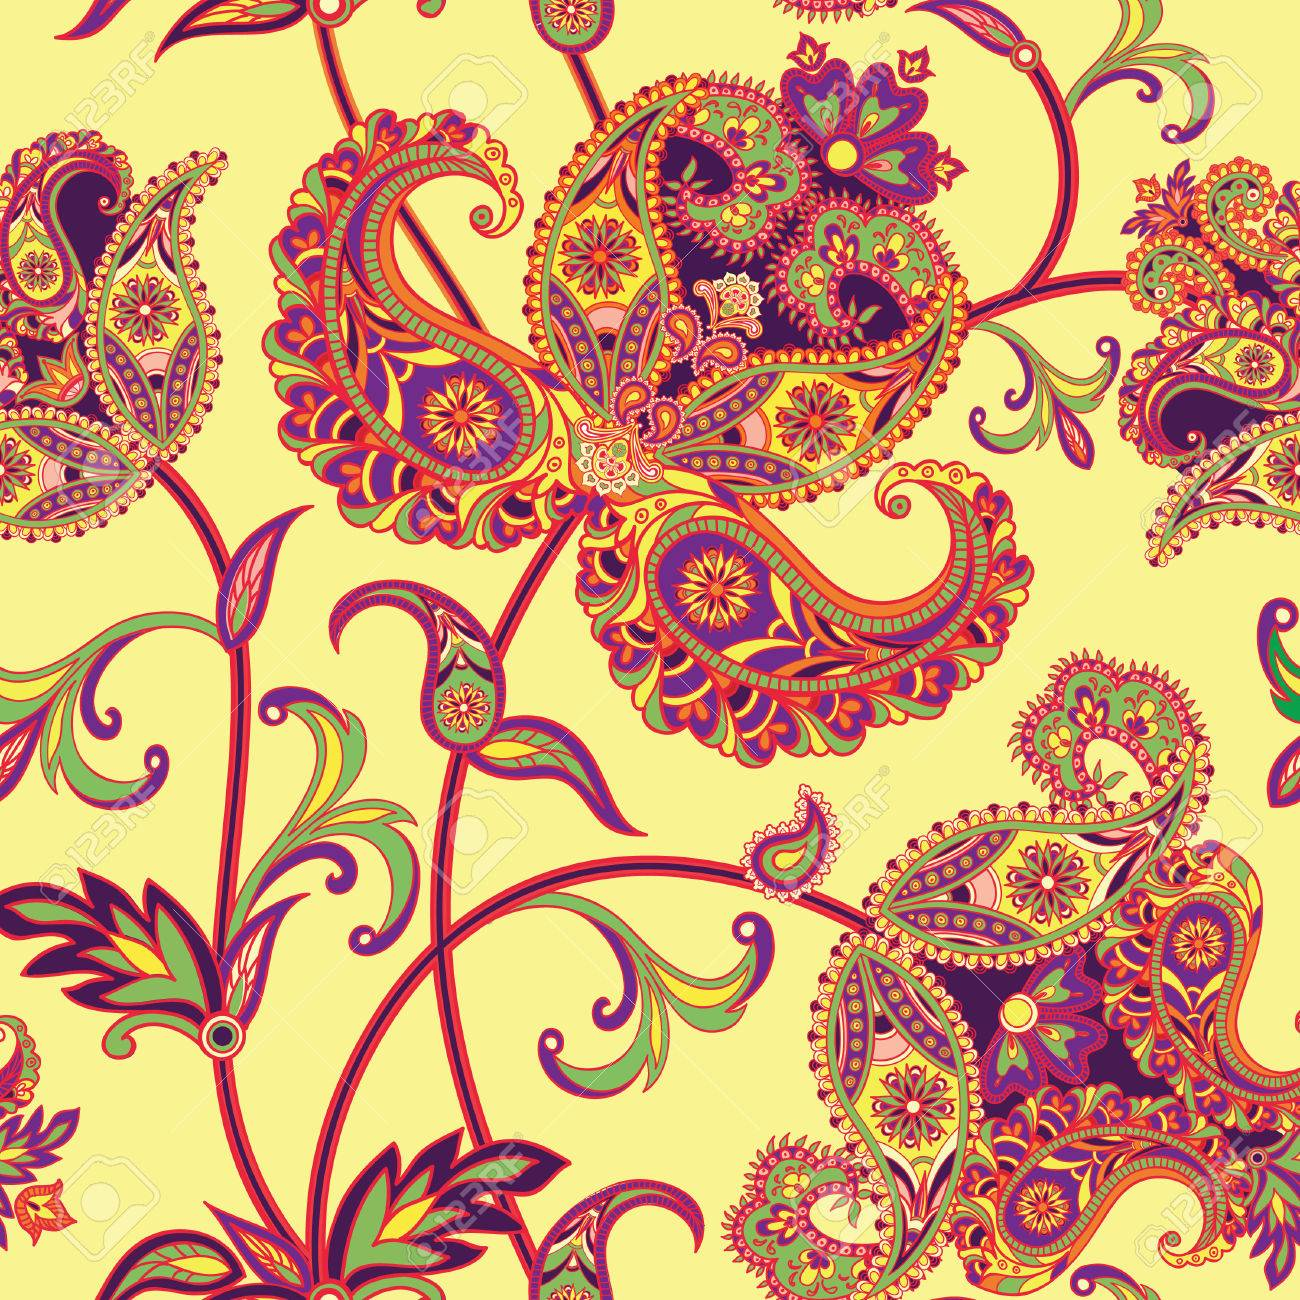 Flourish tiled pattern. Abstract floral geometric seamless oriental background. Fantastic flowers and leaves. Wonderland motives of the paintings of arabic mandala. Indian fabric pattern. - 54853504